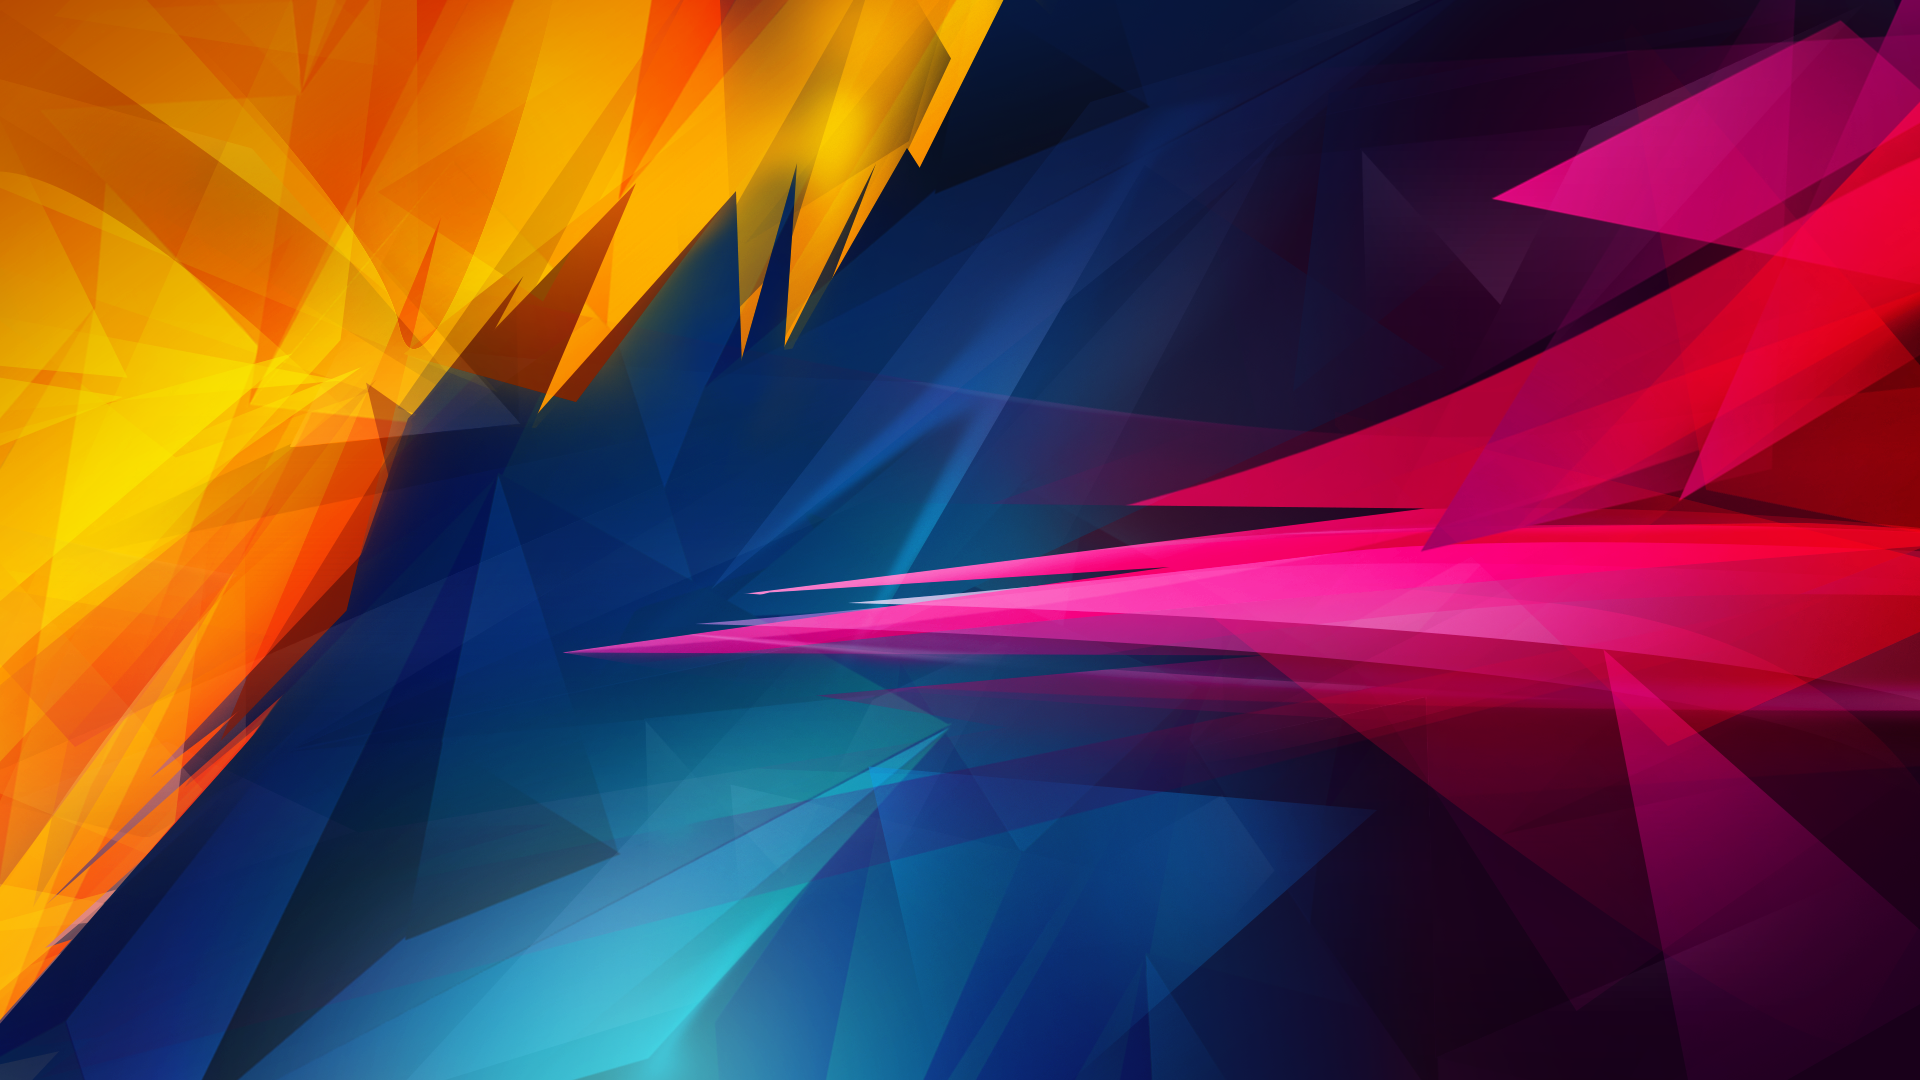 Abstract Hd Wallpapers Colors 4k Wallpaper Download High